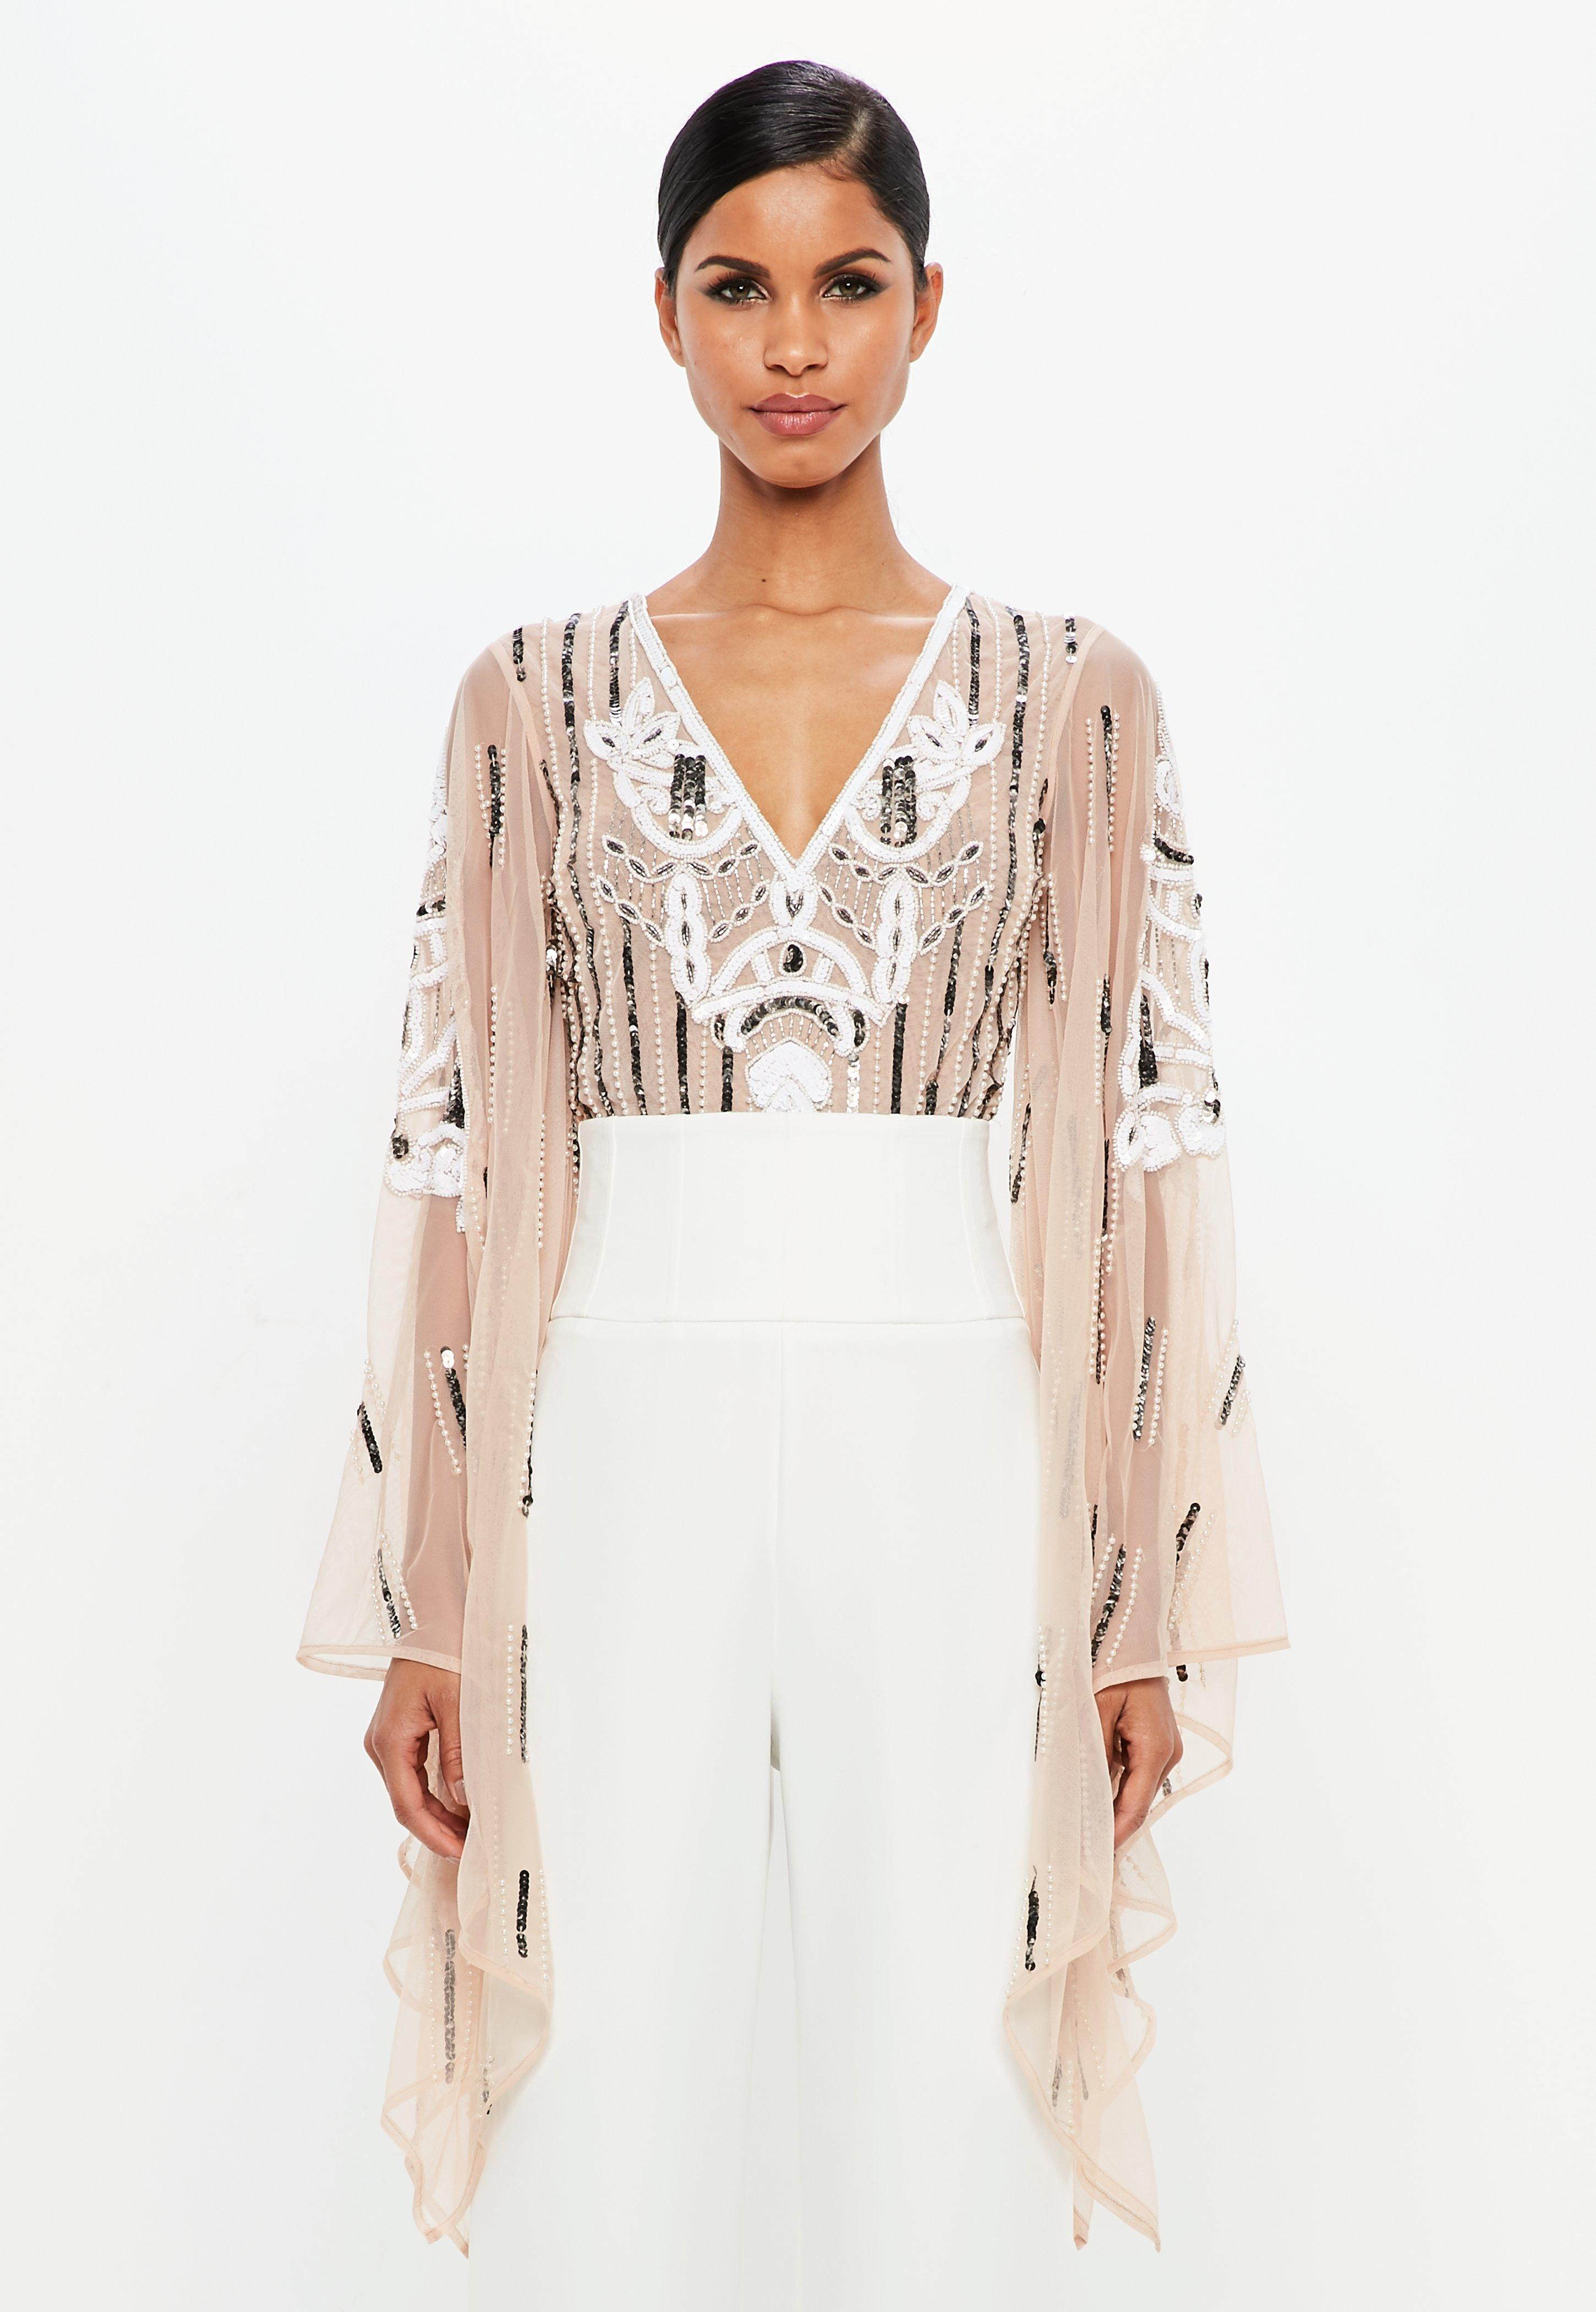 Lyst - Missguided Peace + Love Nude Embellished Plunge Mesh Bodysuit ... 17c54477a